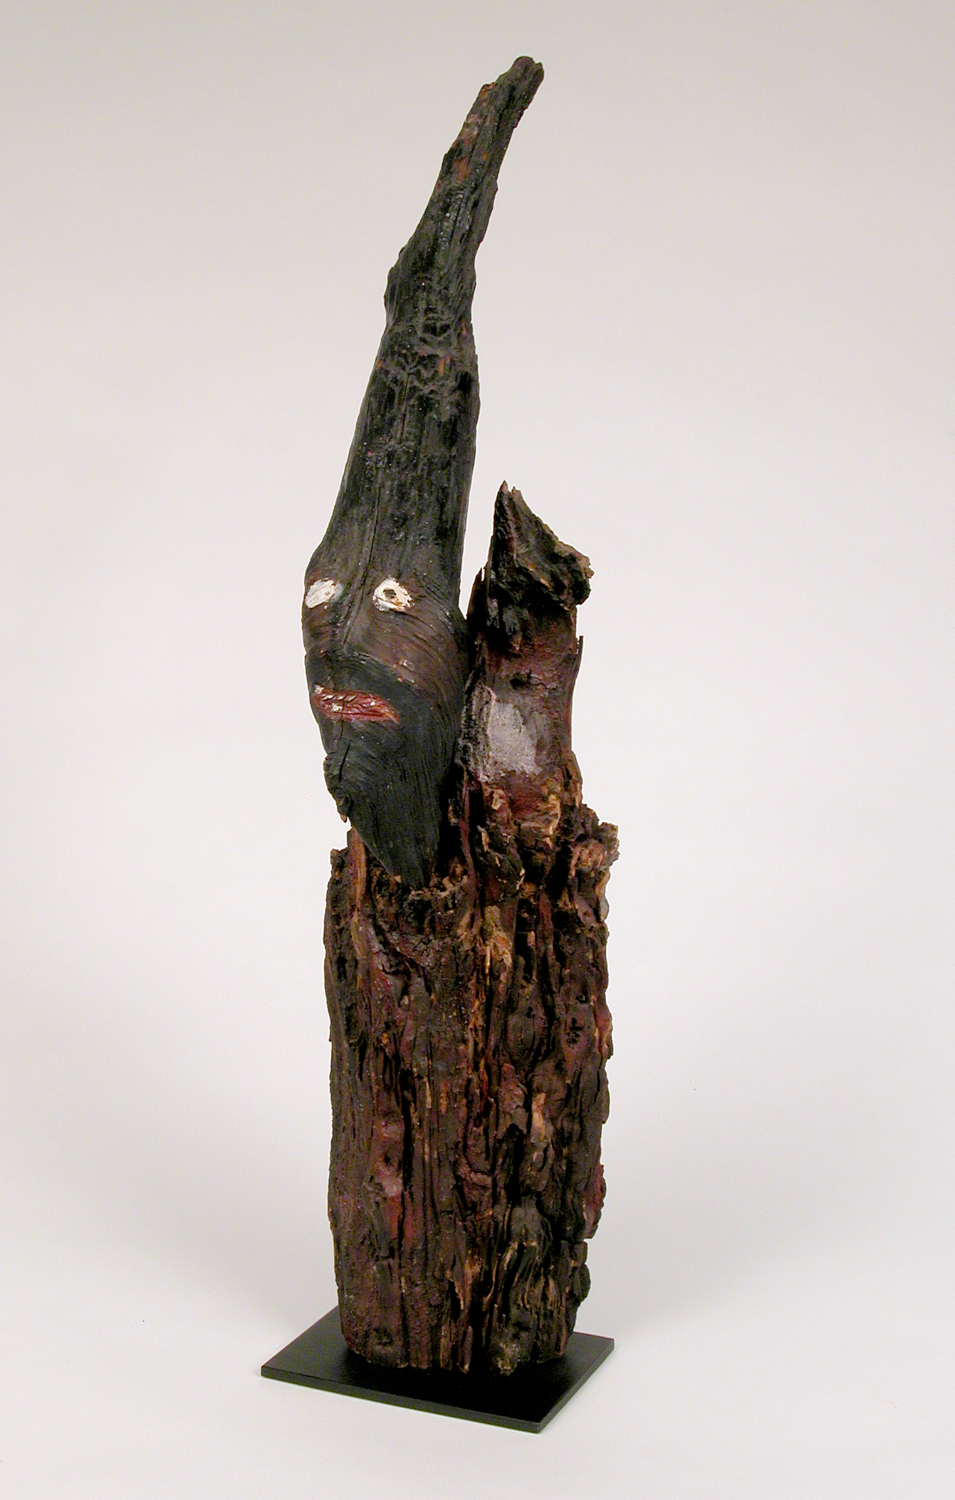 Ralph Griffin (American, 1925-1992).  Untitled (Root sculpture) , ca. 1984. Painted wood, 28 x 6 x 8 in. Intuit: The Center for Intuitive and Outsider Art, gift of Shari Cavin-Morris and Randall Morris, 2004.42